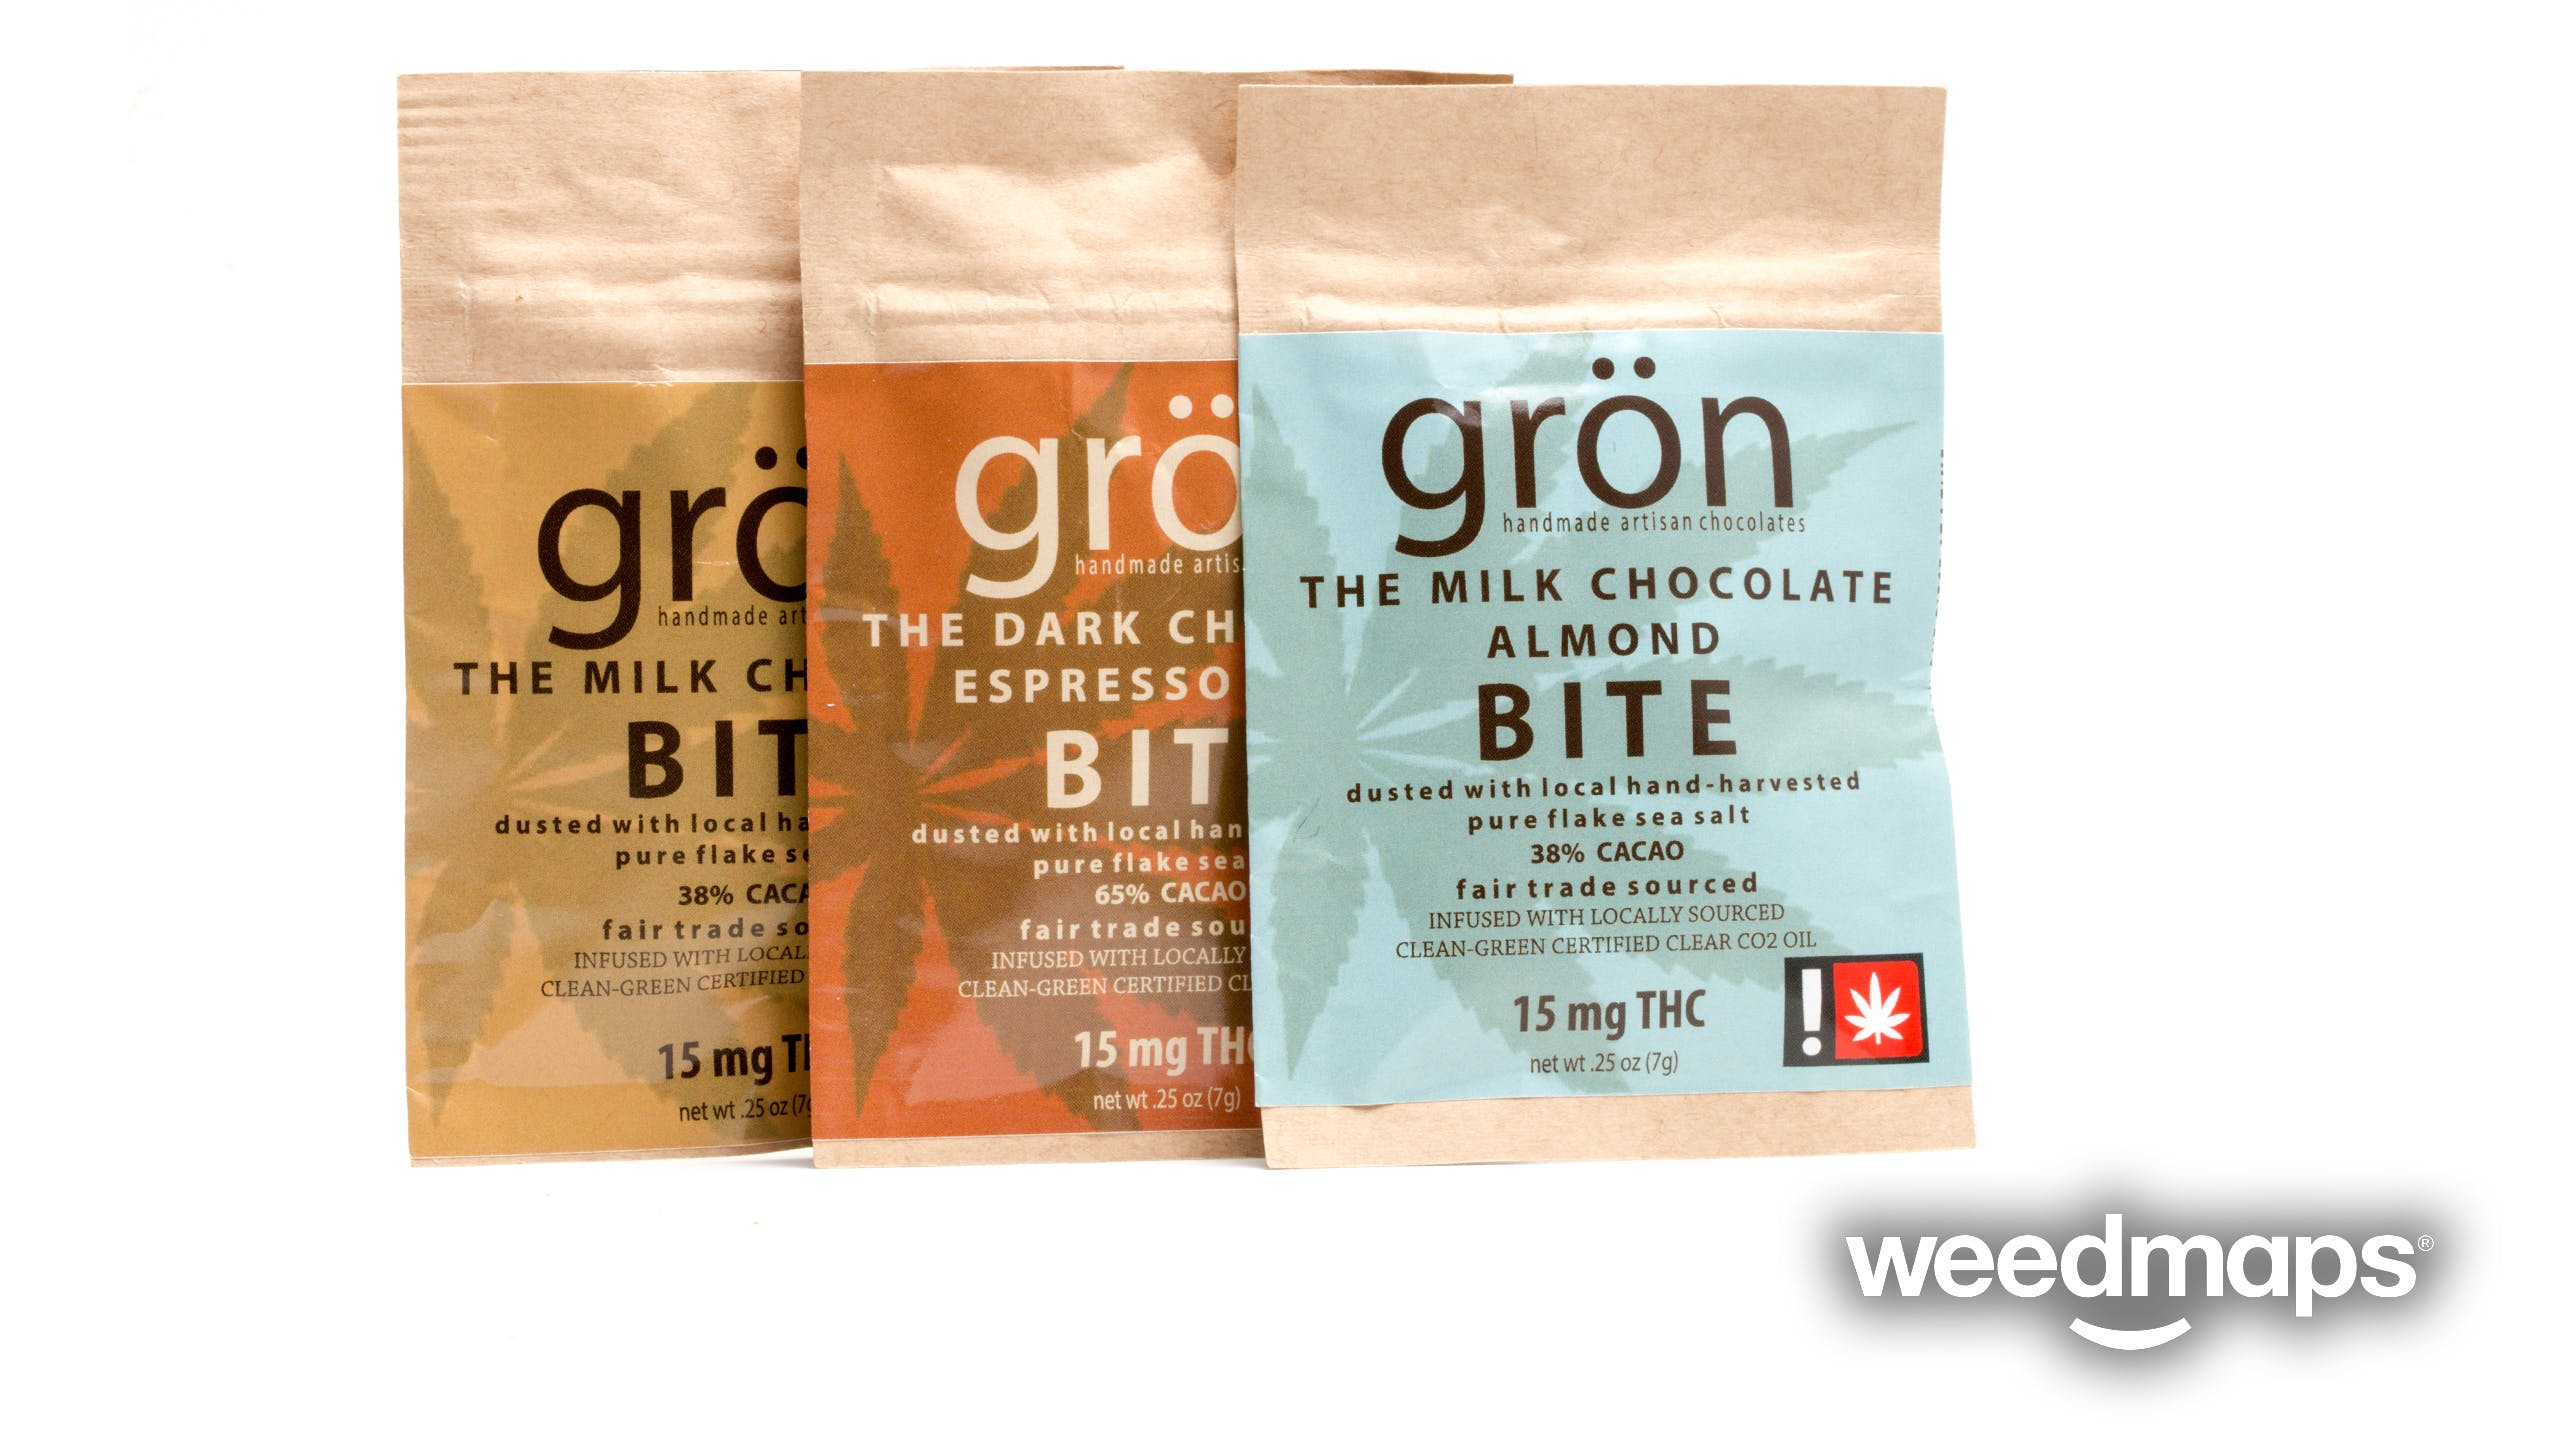 edible-grapn-medical-thc-assorted-flavor-chocolate-barsbits